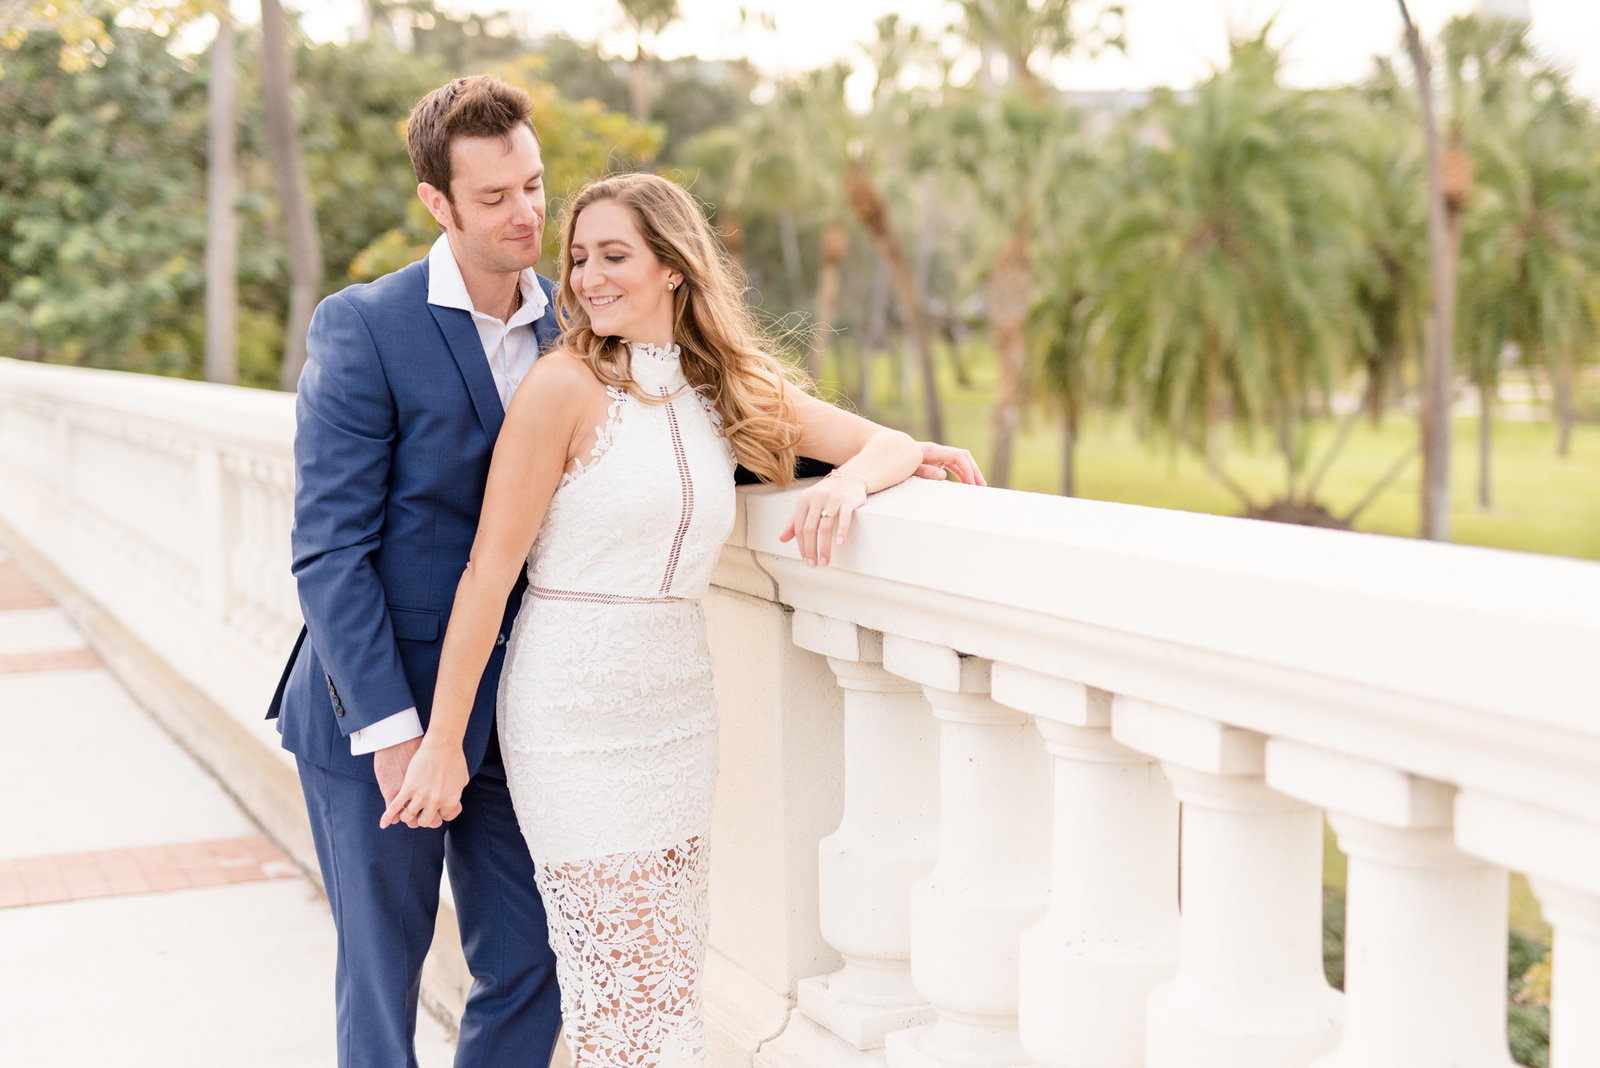 Sunset-Downtown-Tampa-Engagment-Session 0030